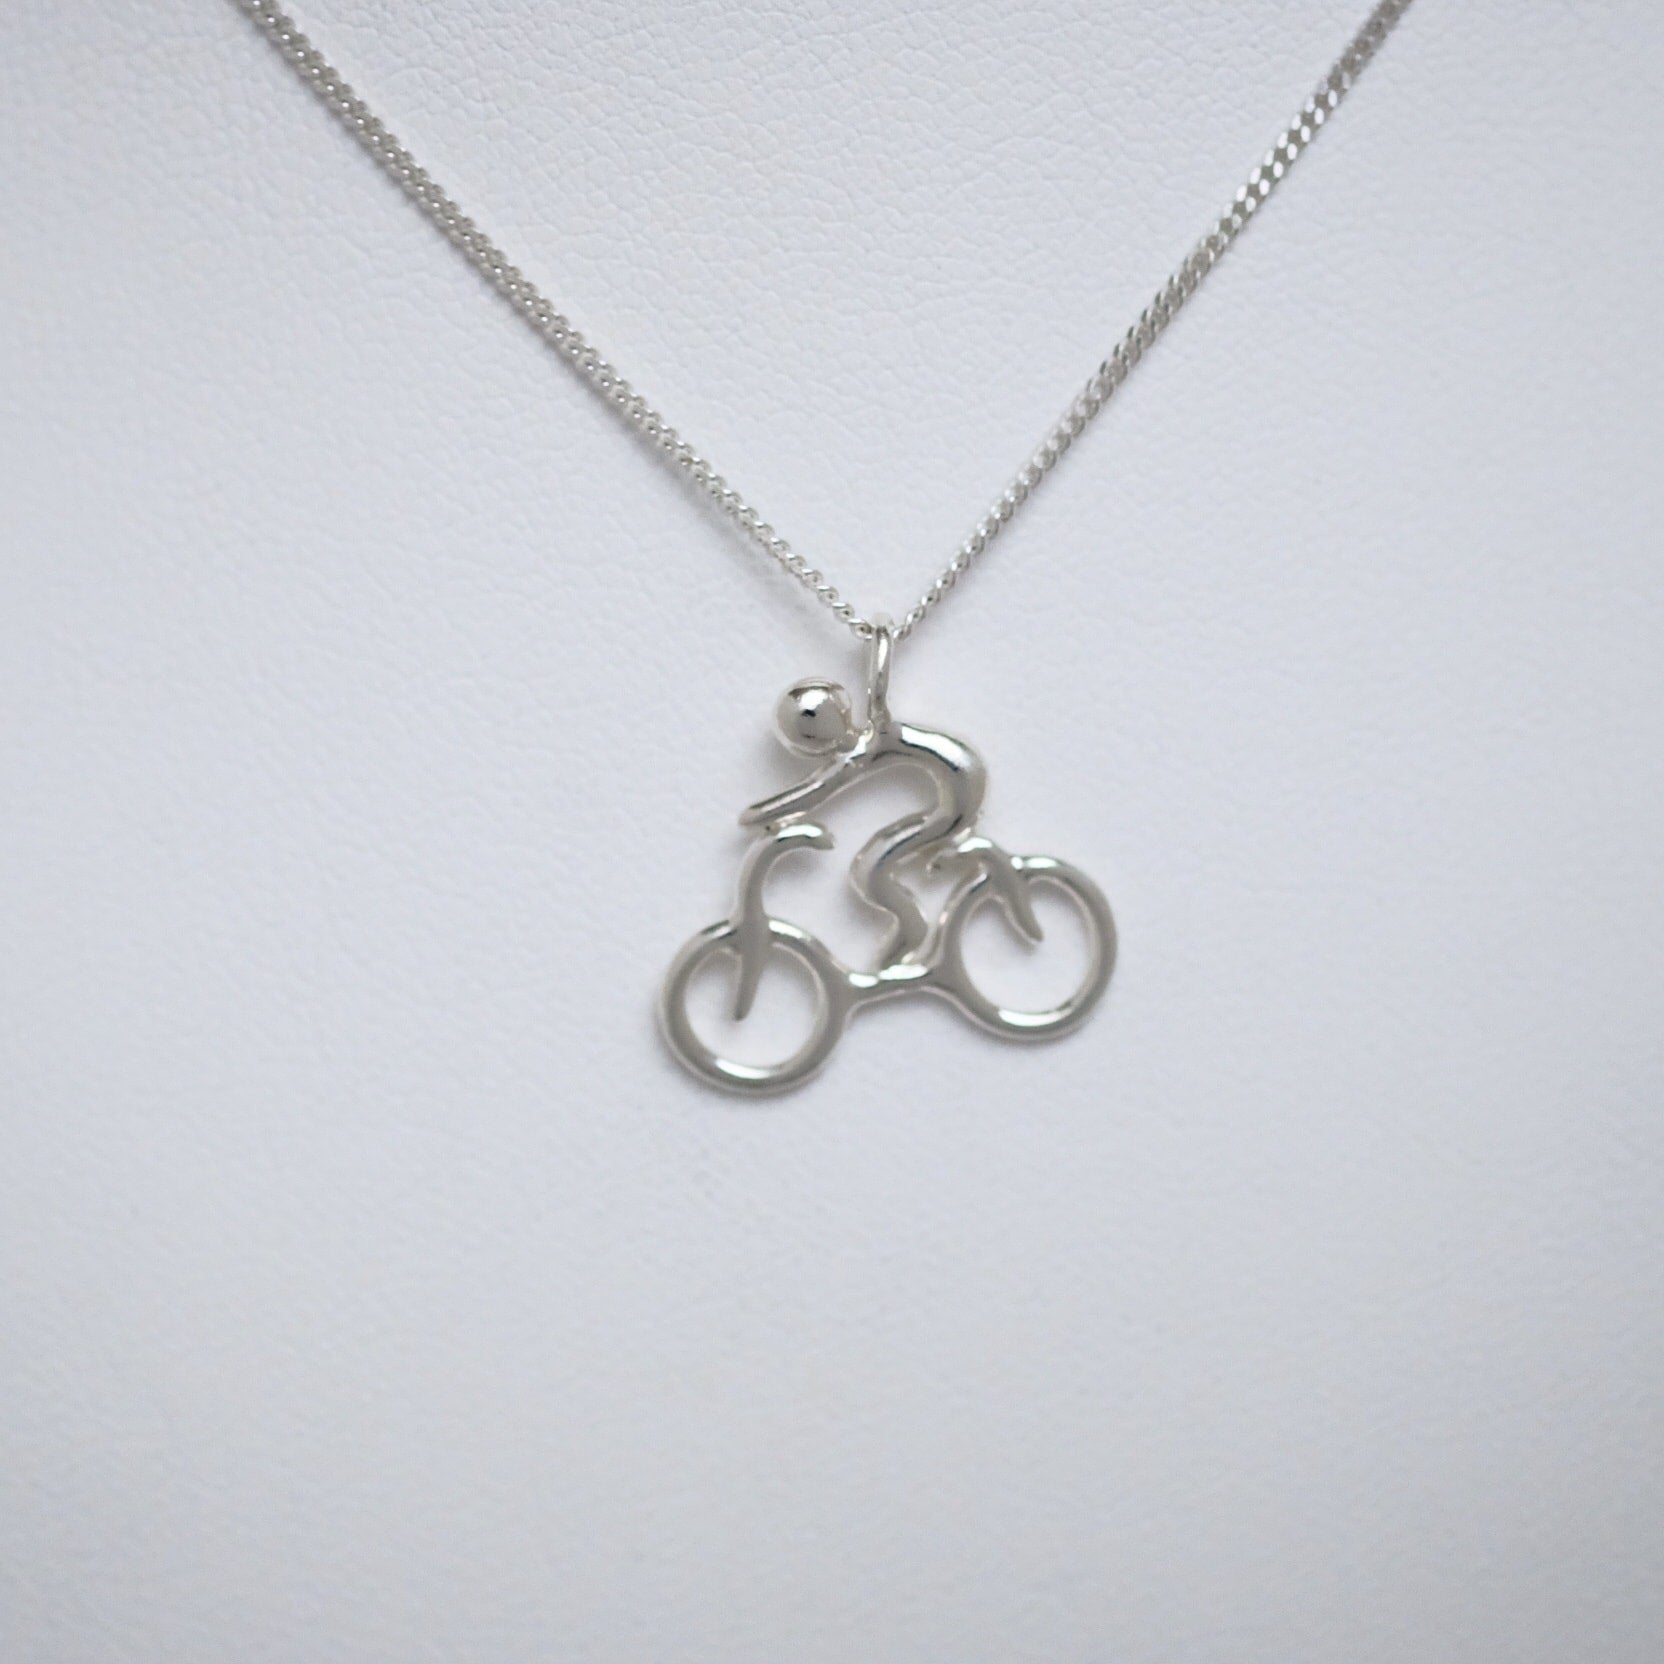 Cyclist sterling silver pendant by Joseph Chiang